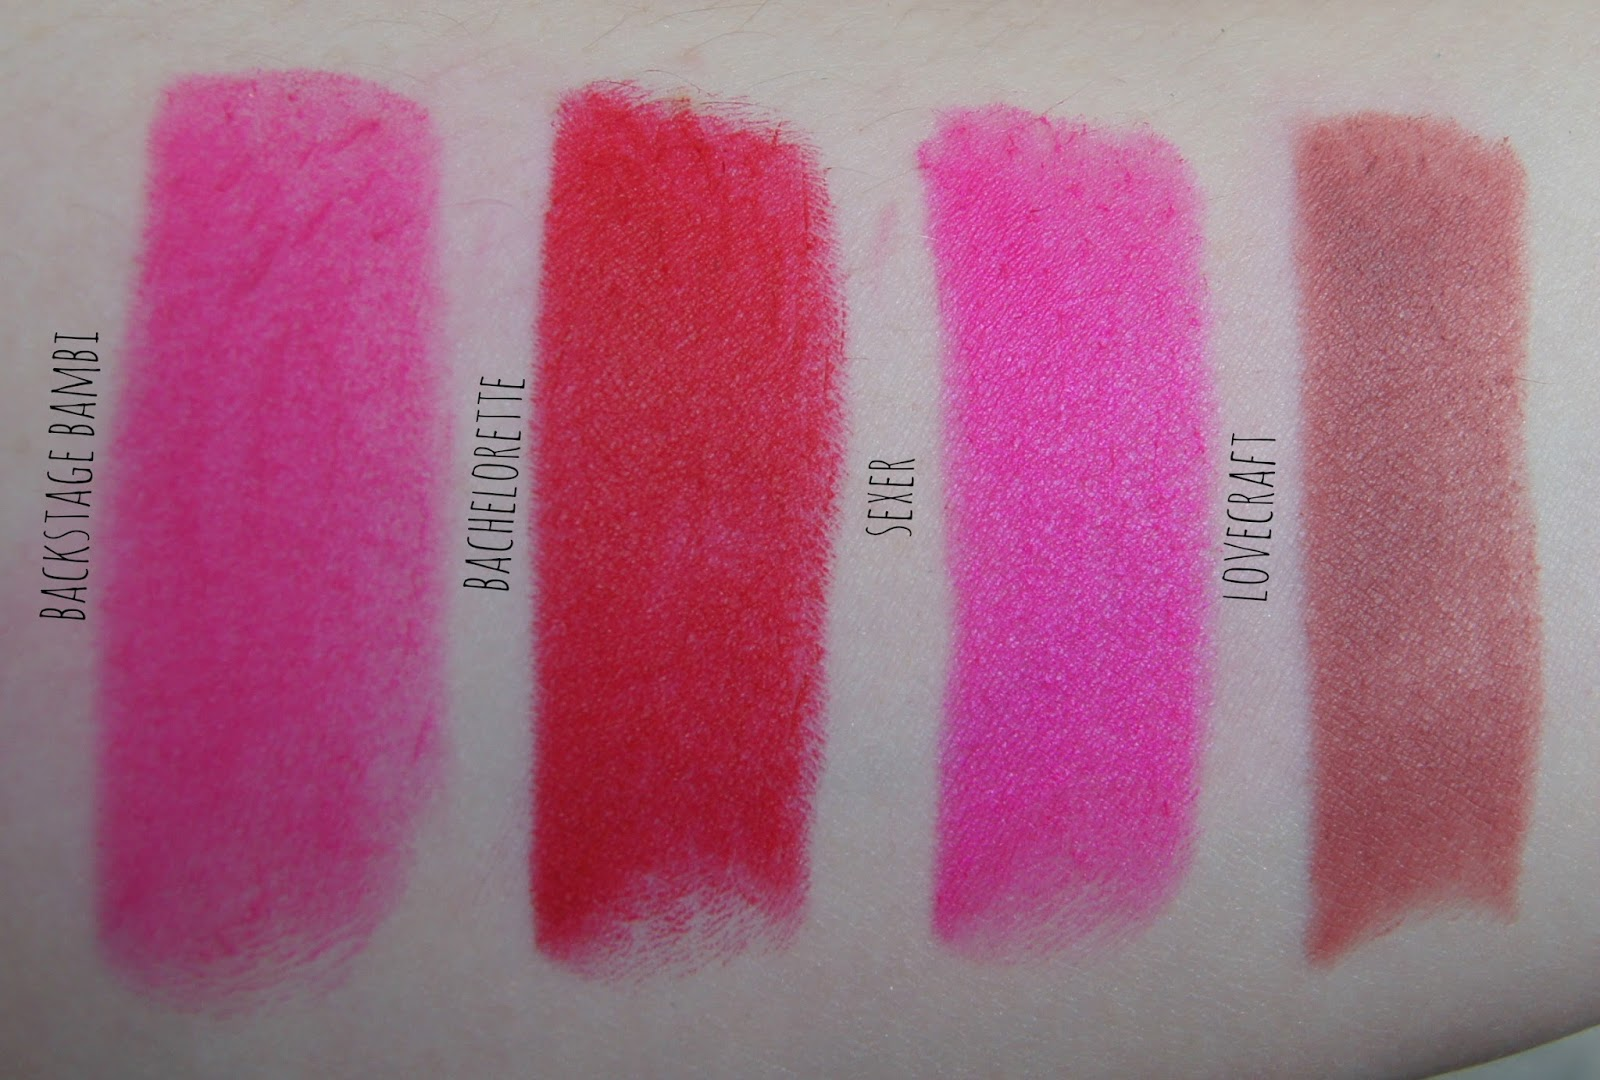 Kat Von D Studded Kiss Lipstick review